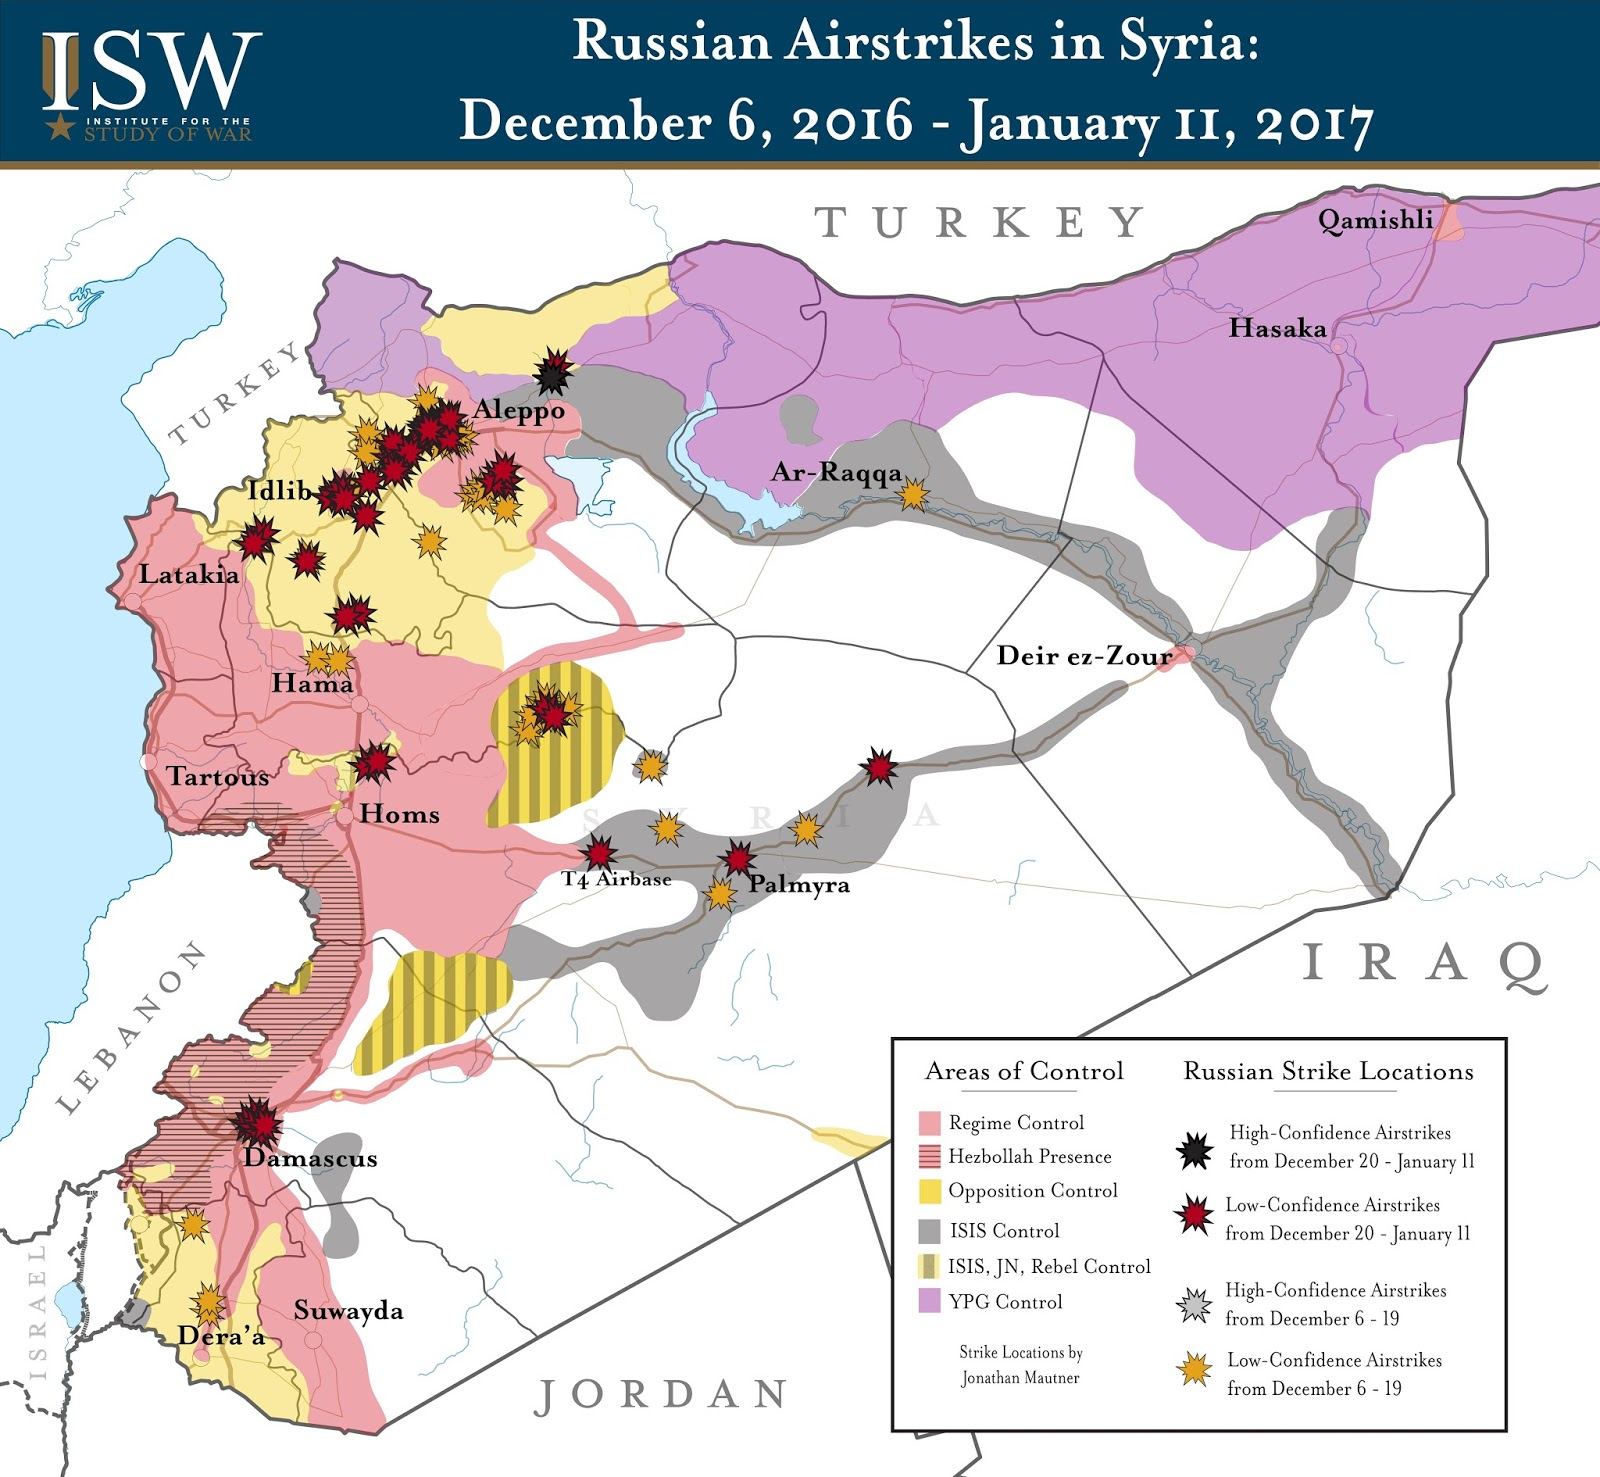 Russian Airstrikes in Syria: December 6, 2016 – January 11, 2017